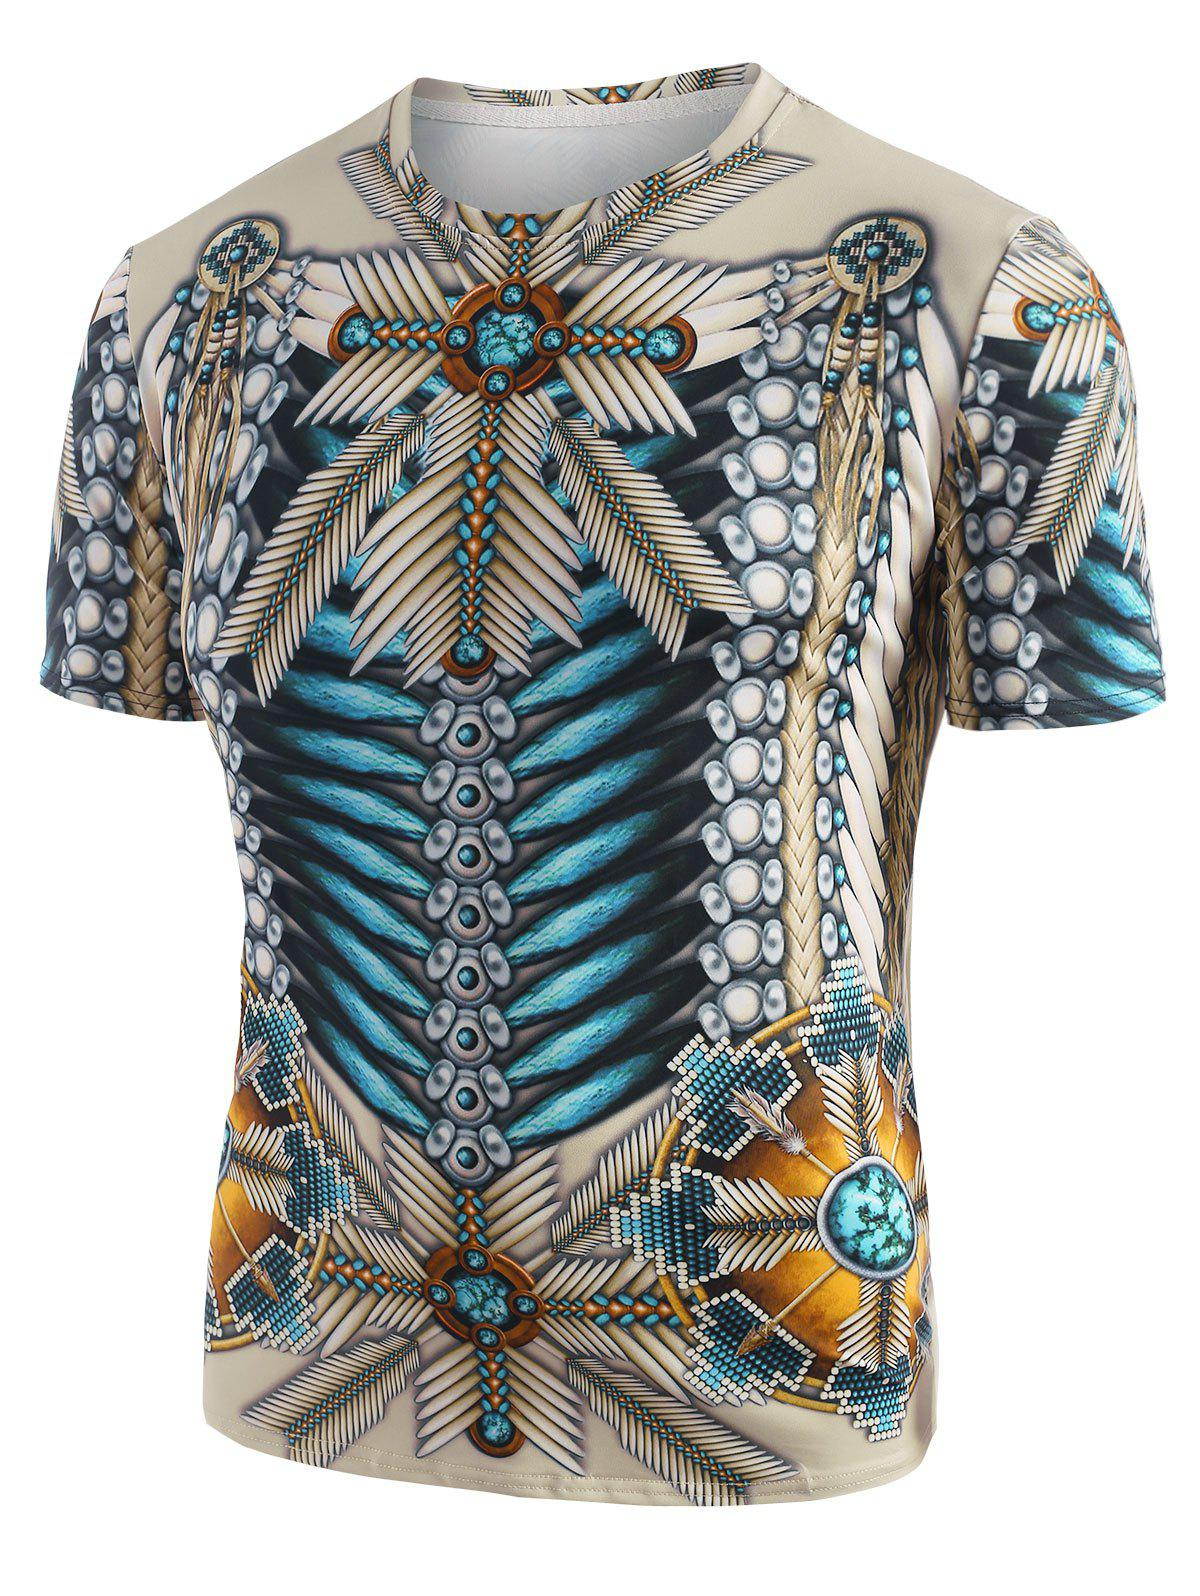 Discount Tribal Indian 3D Print Graphic T-shirt